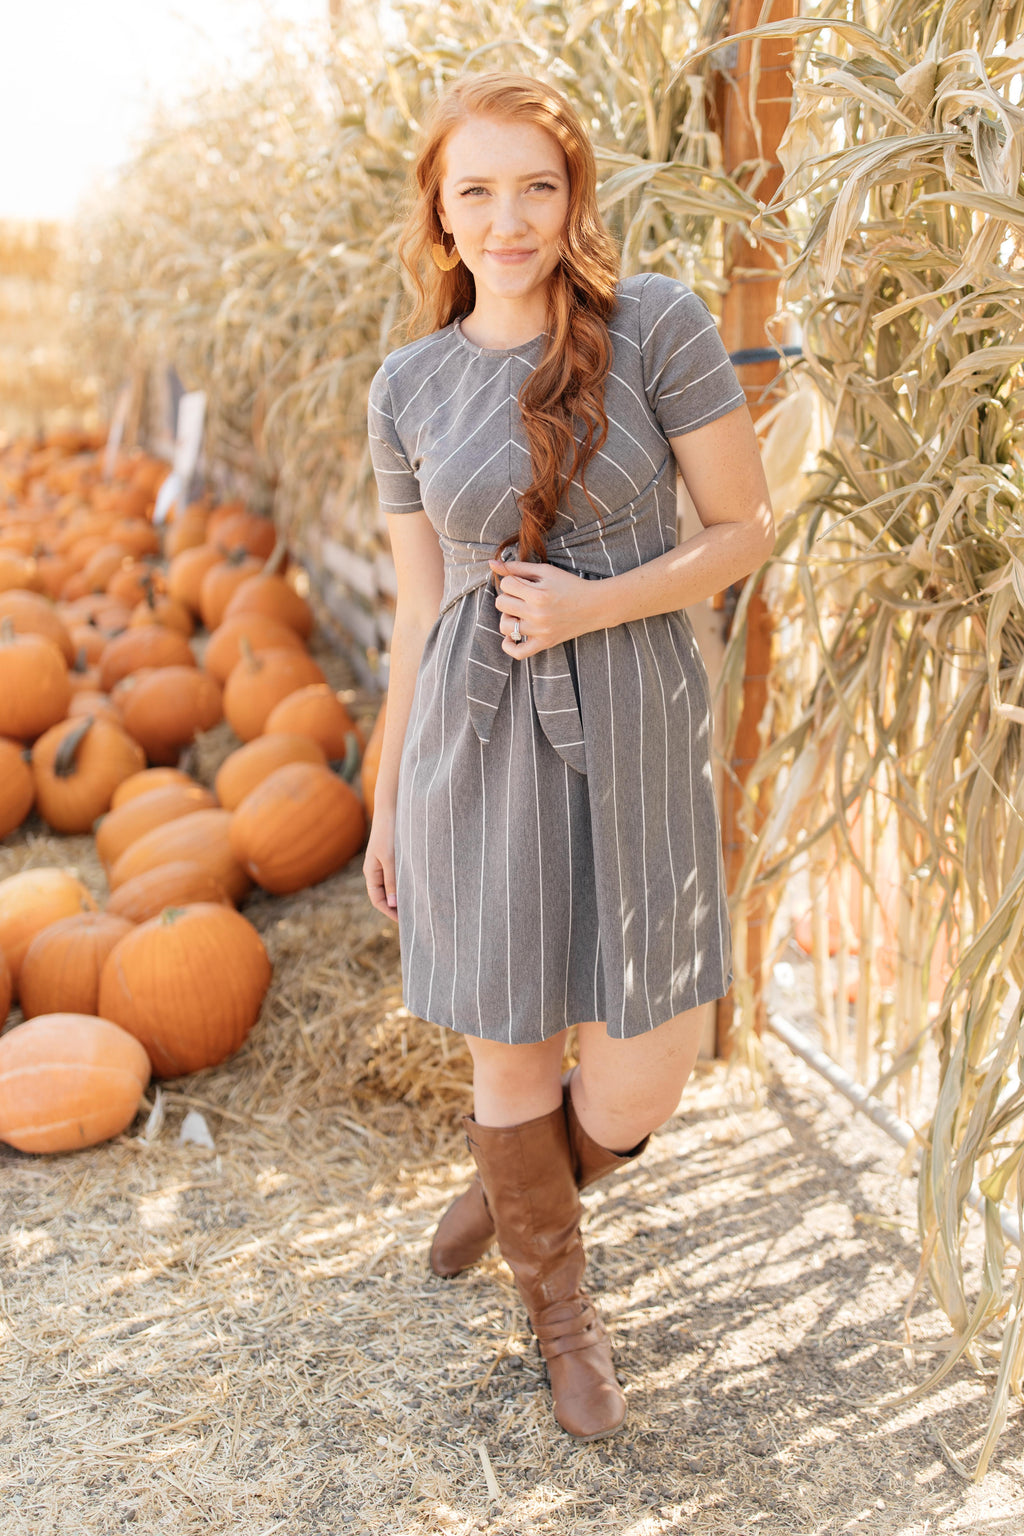 Angles And Stripes Dress in Gray-10-29-2020, 11-6-2020, 1XL, 2XL, 3XL, BFCM2020, Bonus, Dresses, Final Few Friday, Group A, Group B, Group C, Group D, Group V, Group W, Large, Made in the USA, Medium, Small, XL, XS-Womens Artisan USA American Made Clothing Accessories